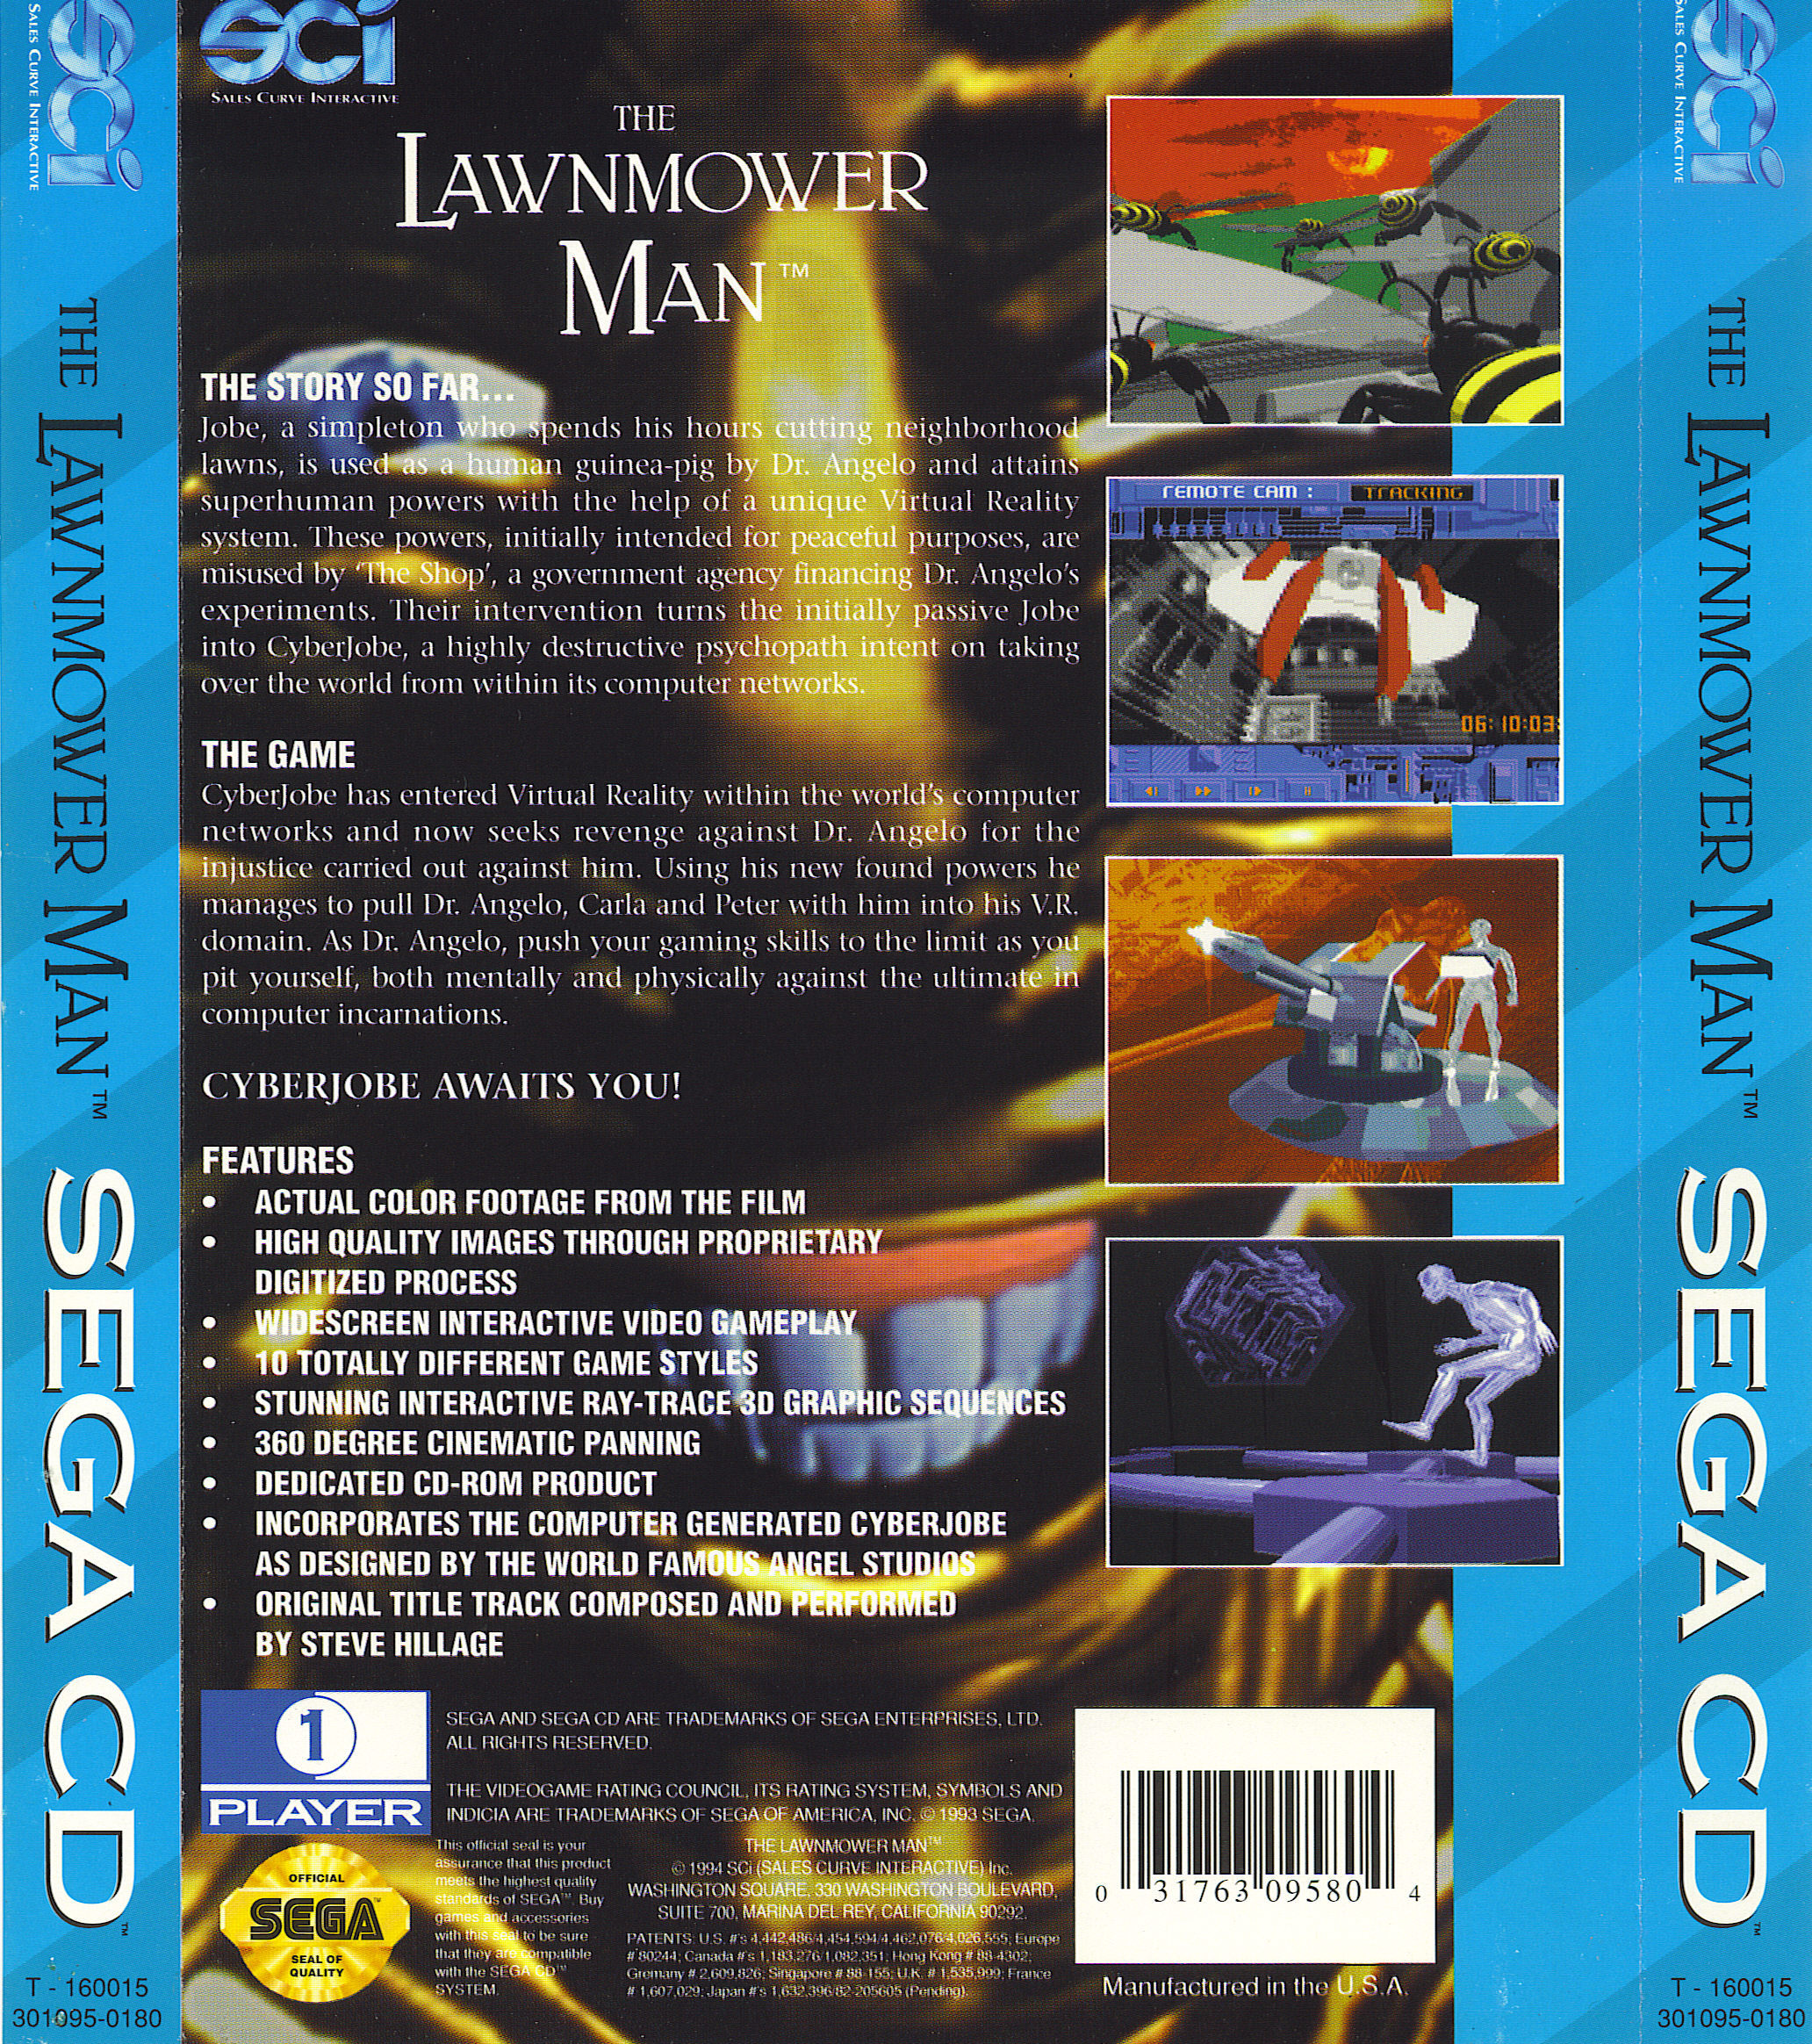 Lawnmower Man, The (U) Back Cover